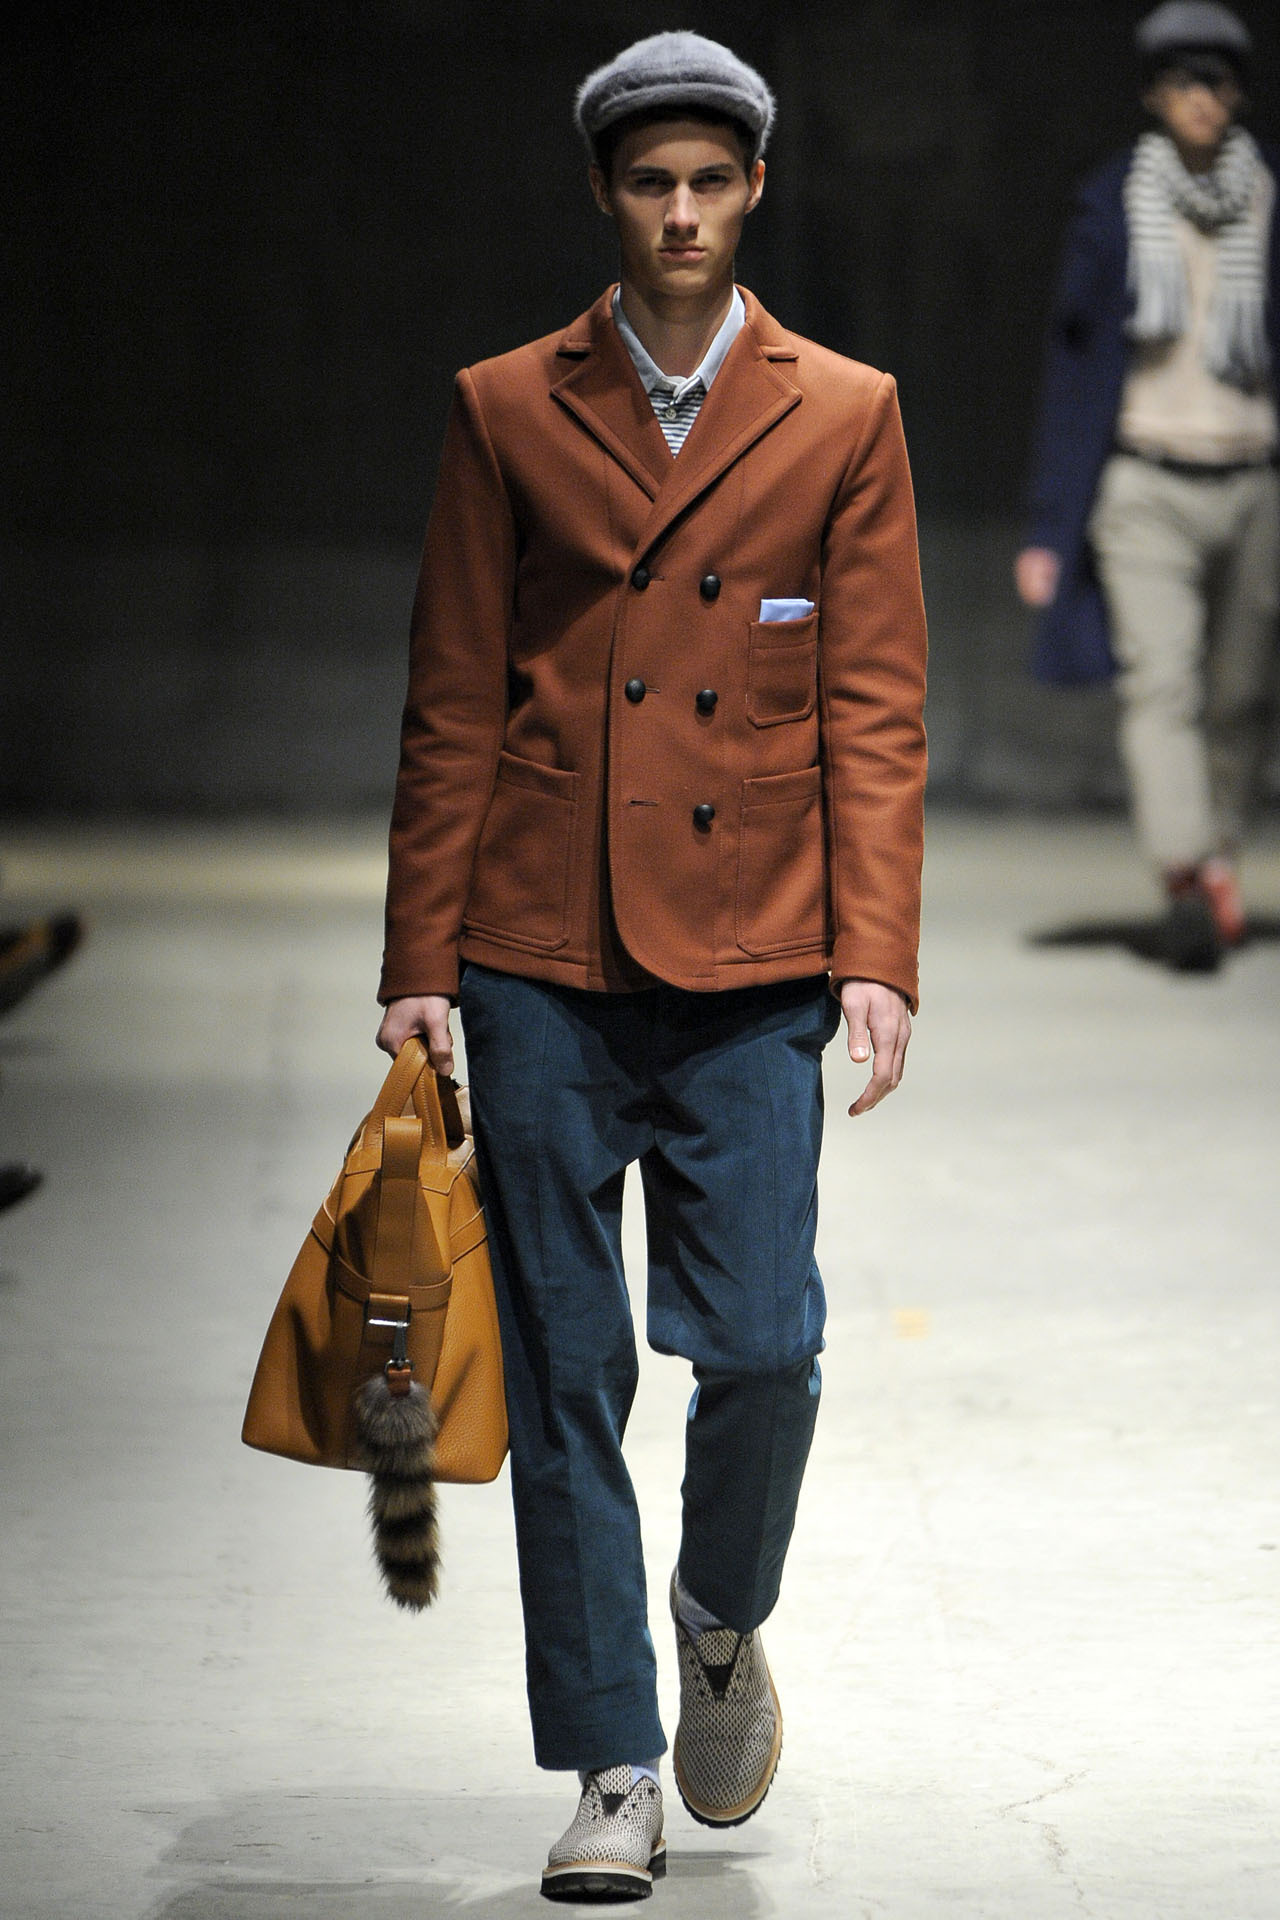 Andrea Pompilio Fall/Winter 2012 Menswear